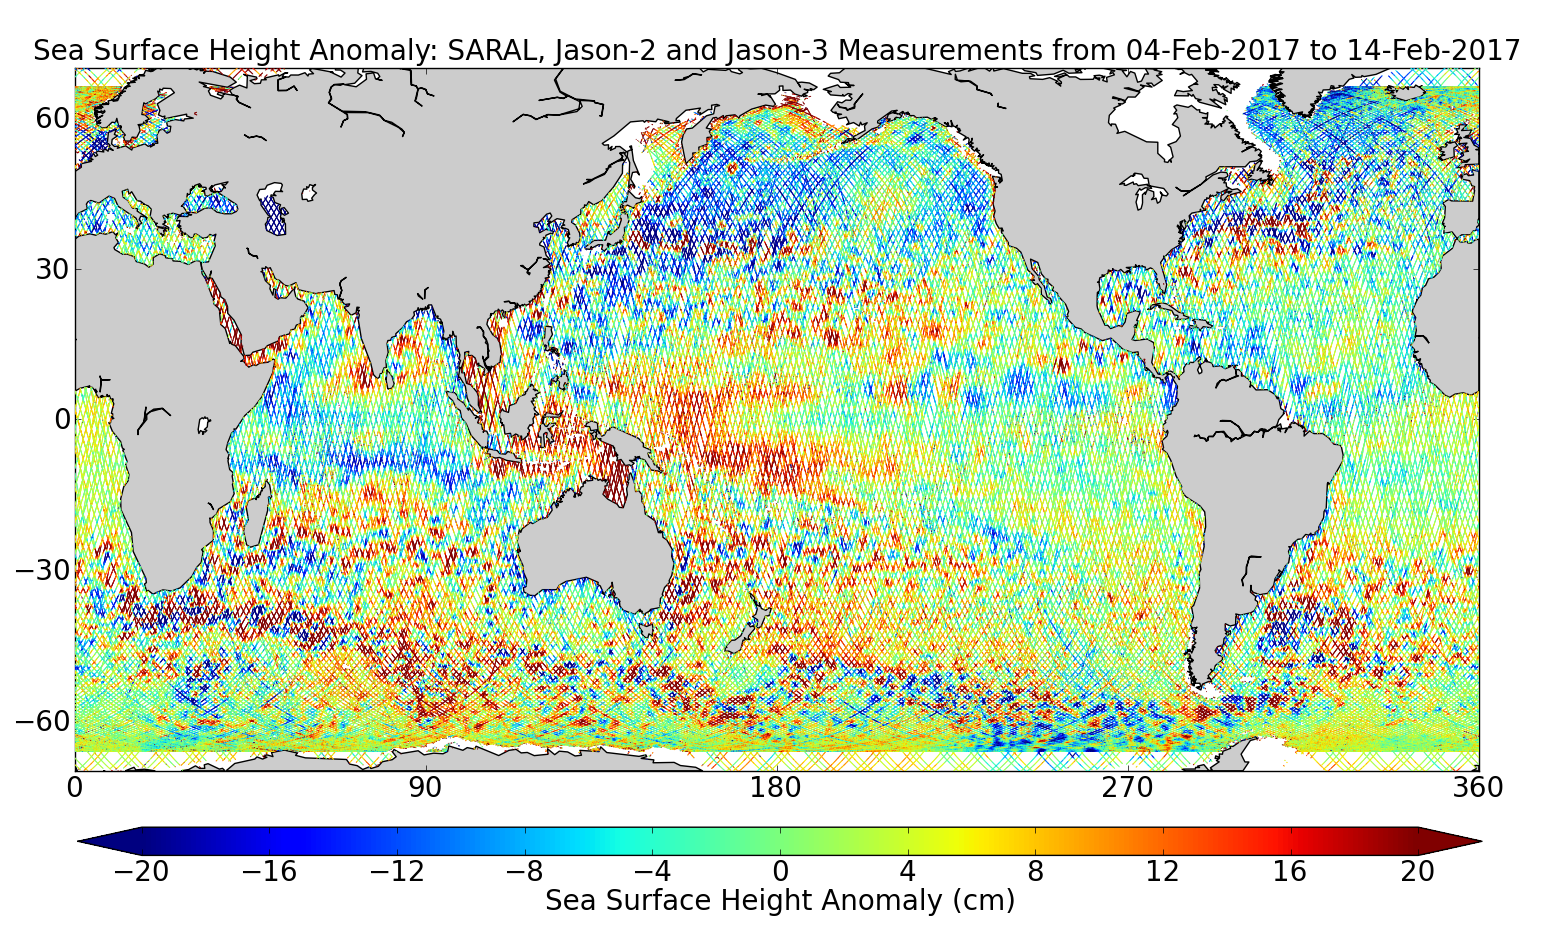 Sea Surface Height Anomaly: SARAL, Jason-2 and Jason-3 Measurements from 04-Feb-2017 to 14-Feb-2017